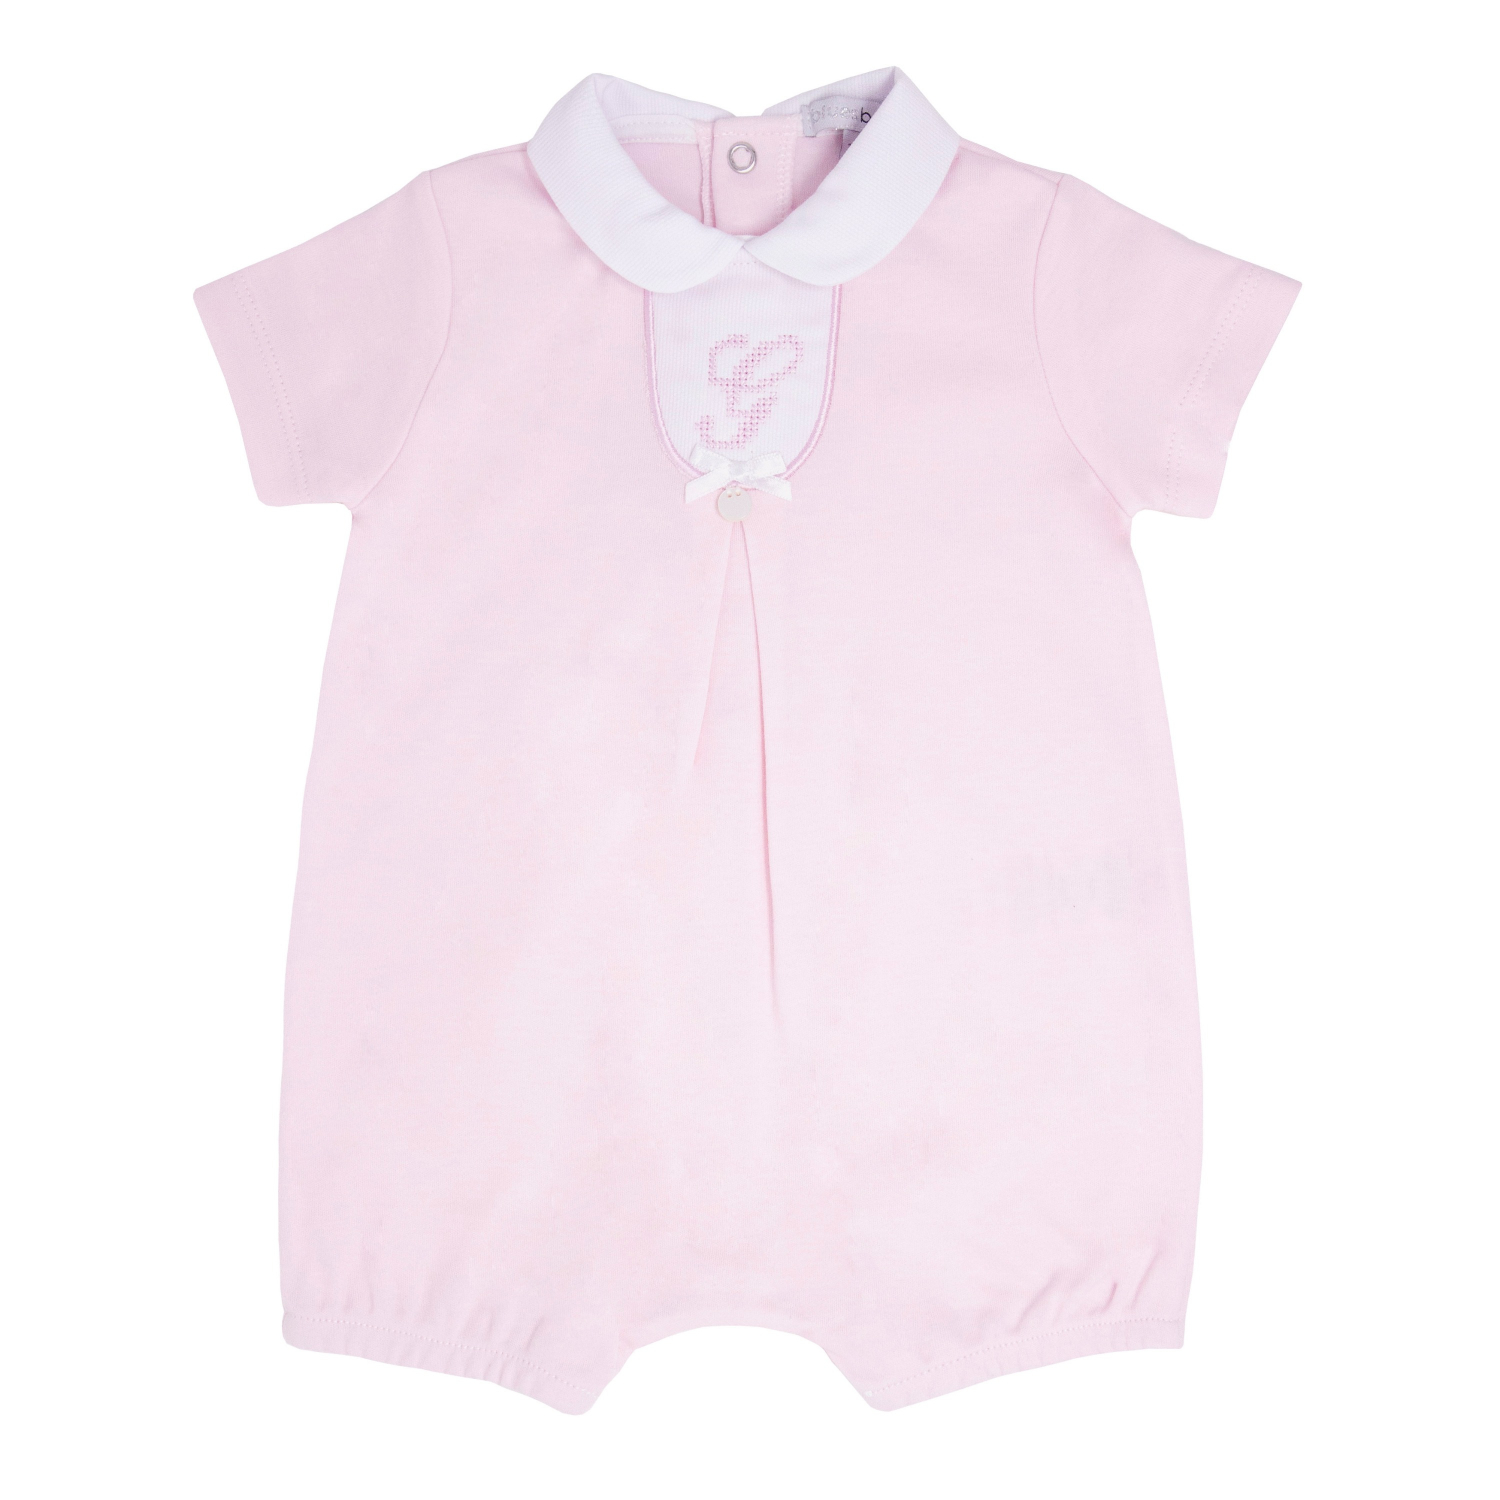 Classic Chic Summer Baby Girl outfit